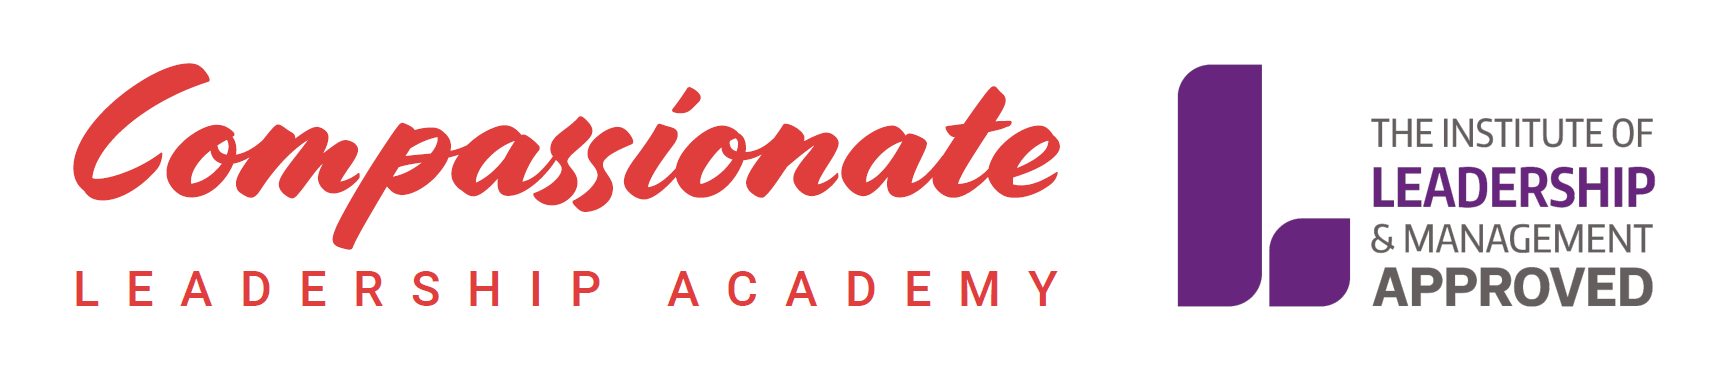 Compassionate Leadership Academy